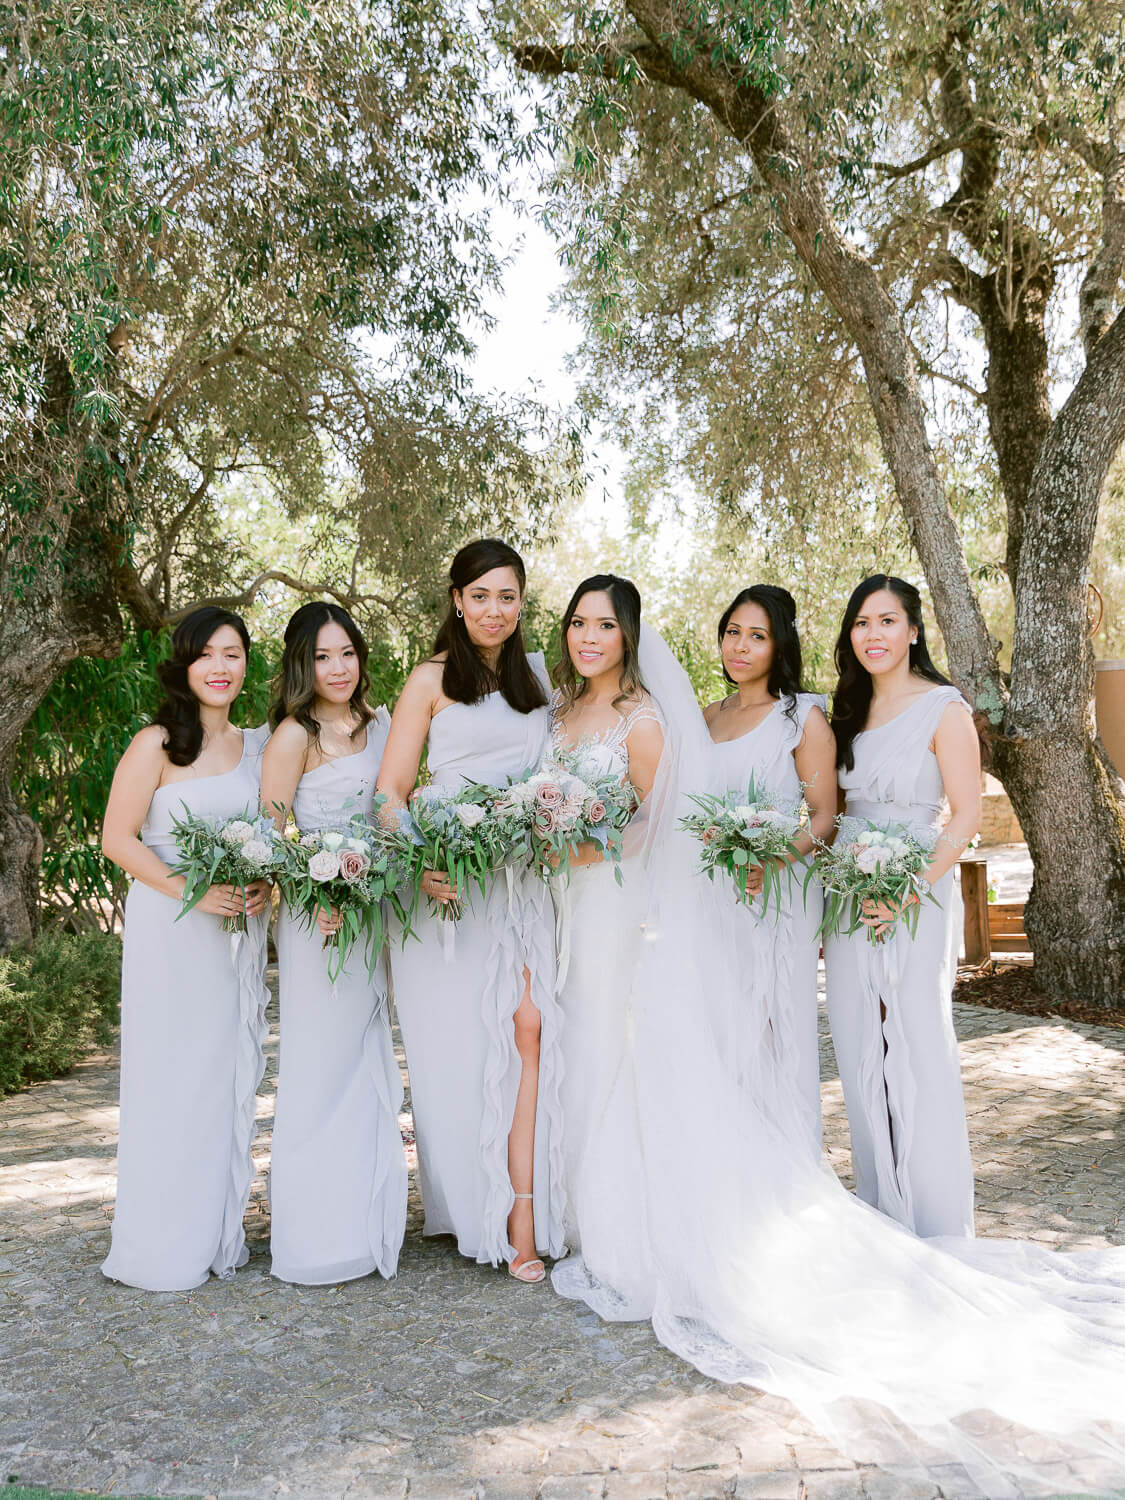 bride and bridesmaids portrait at a wedding in the Algarve by Portugal Wedding Photographer